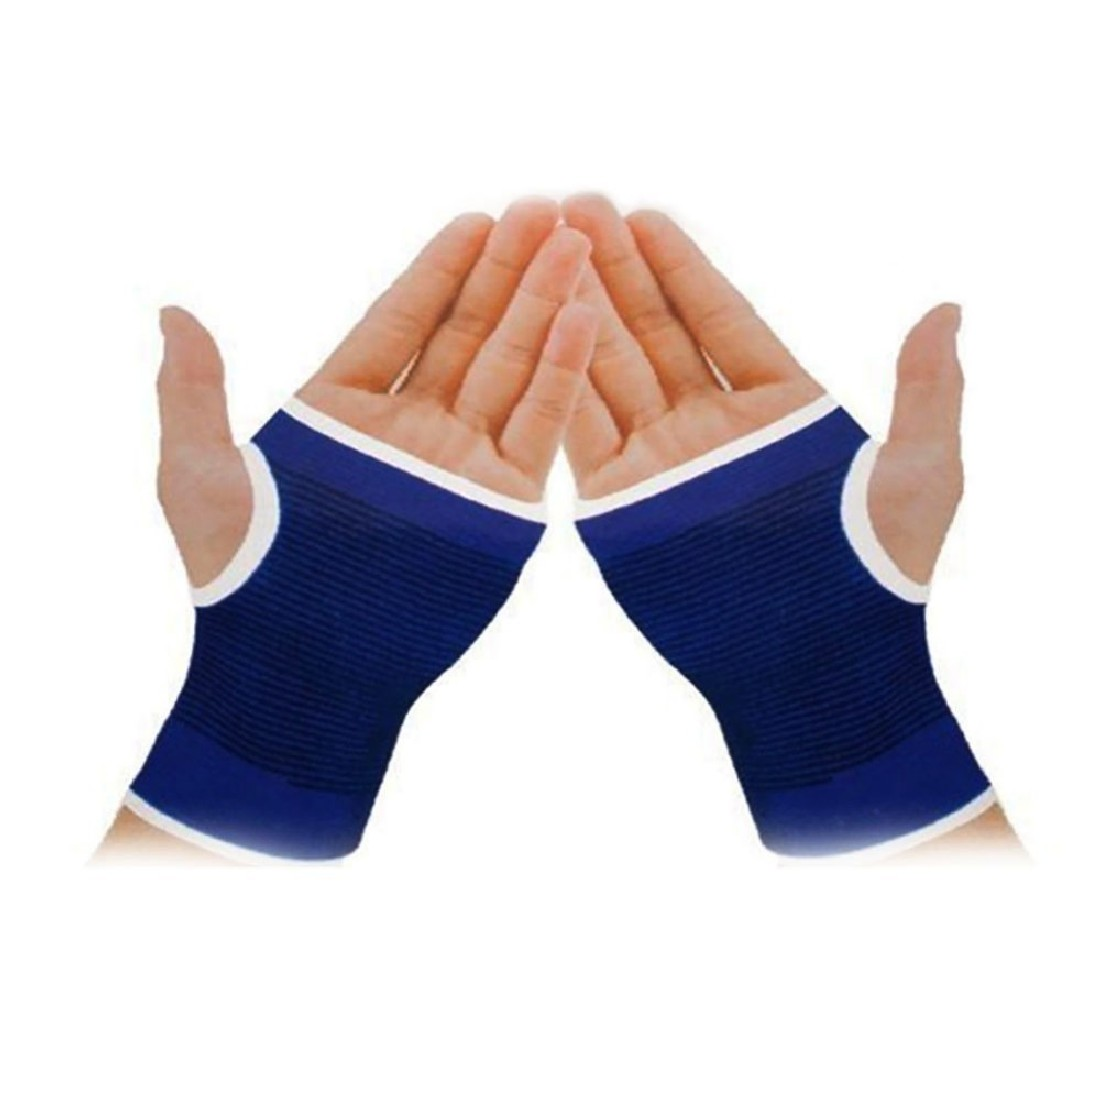 Hot Sale Palm Wrist Hand Support Glove Elastic Brace Sleeve Sports Bandage Gym Wrap